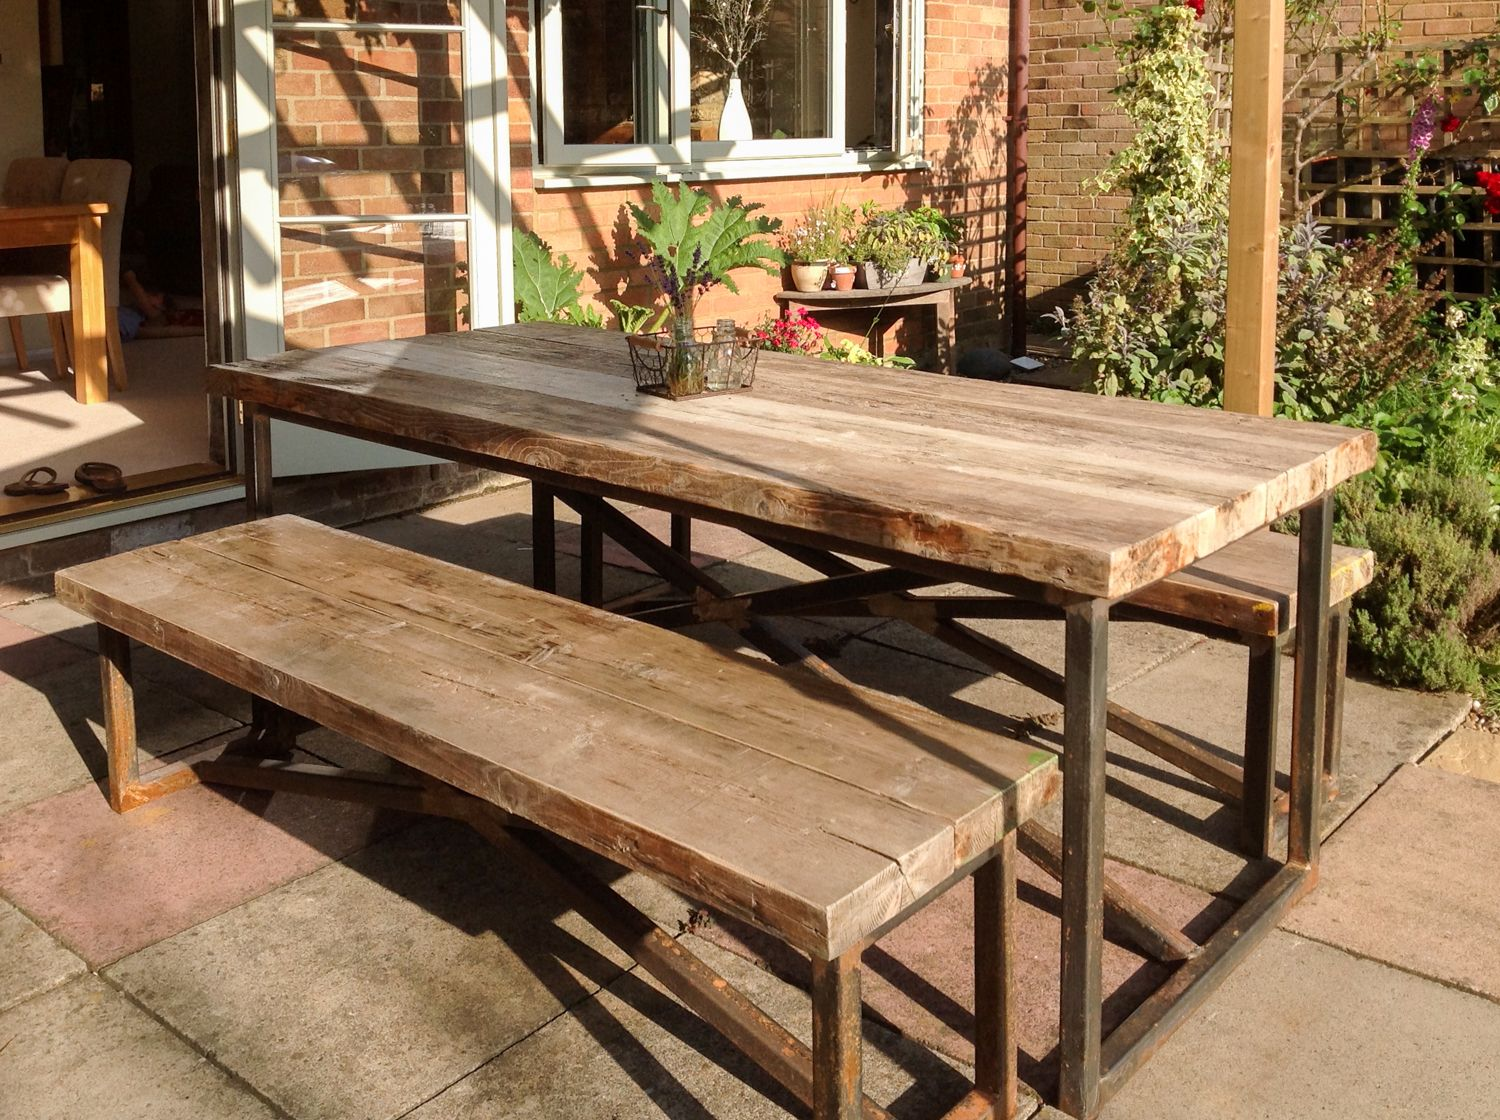 Http Www Reclaimedbespoke Co Uk Templates Prodimg Industrial Mill Style Large Garden Table Benches 01 Jpg Garden Table Bench Table Patio Inspiration